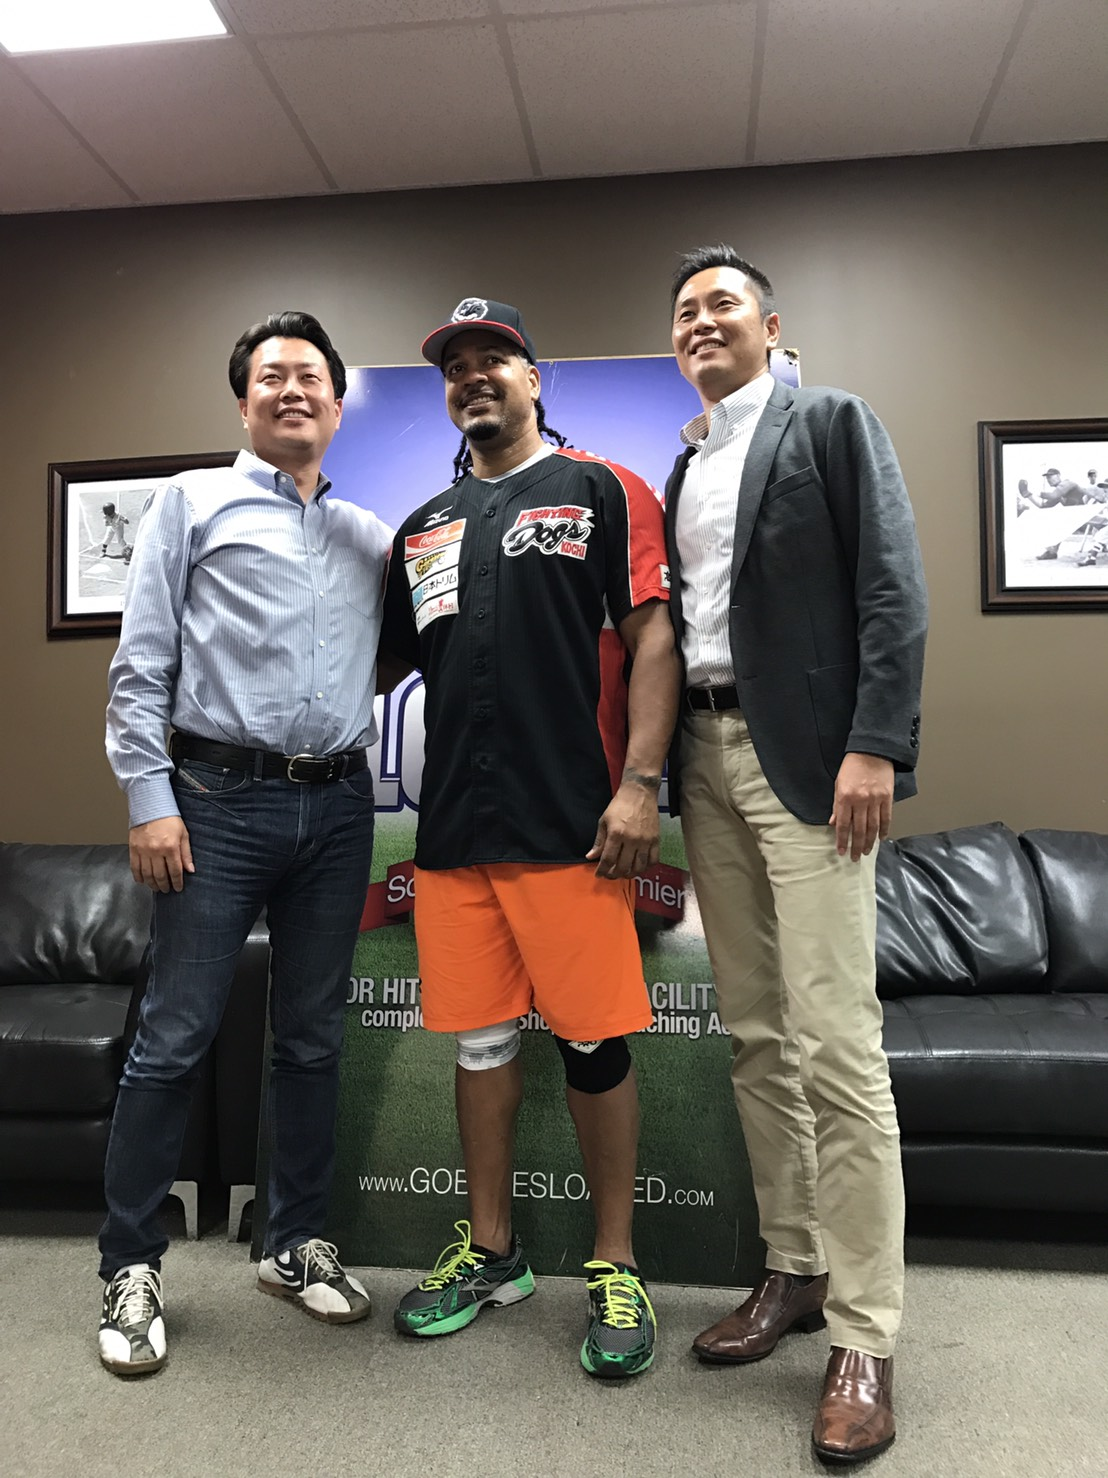 Manny Ramirez to make comeback in Japan